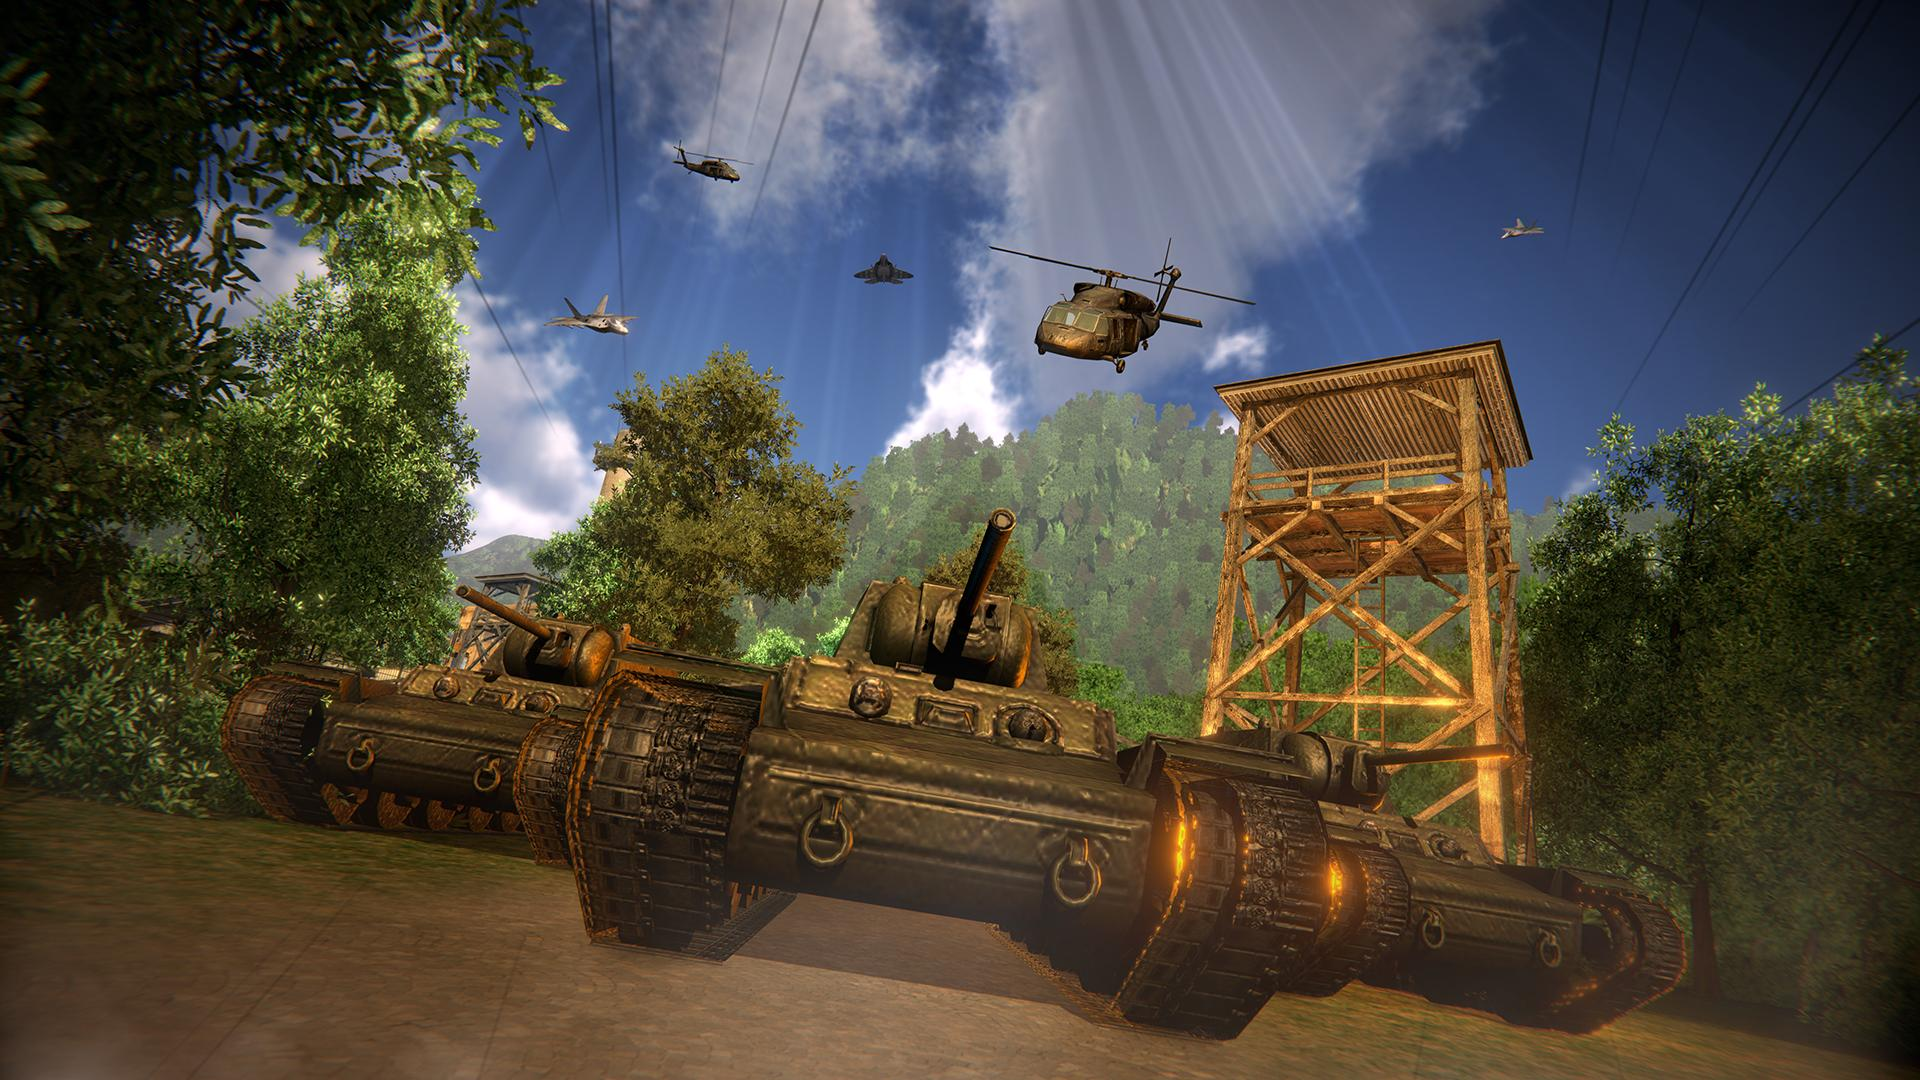 Tank Games 2020 Free Tank Battle Army Combat Games 1.3 Screenshot 5